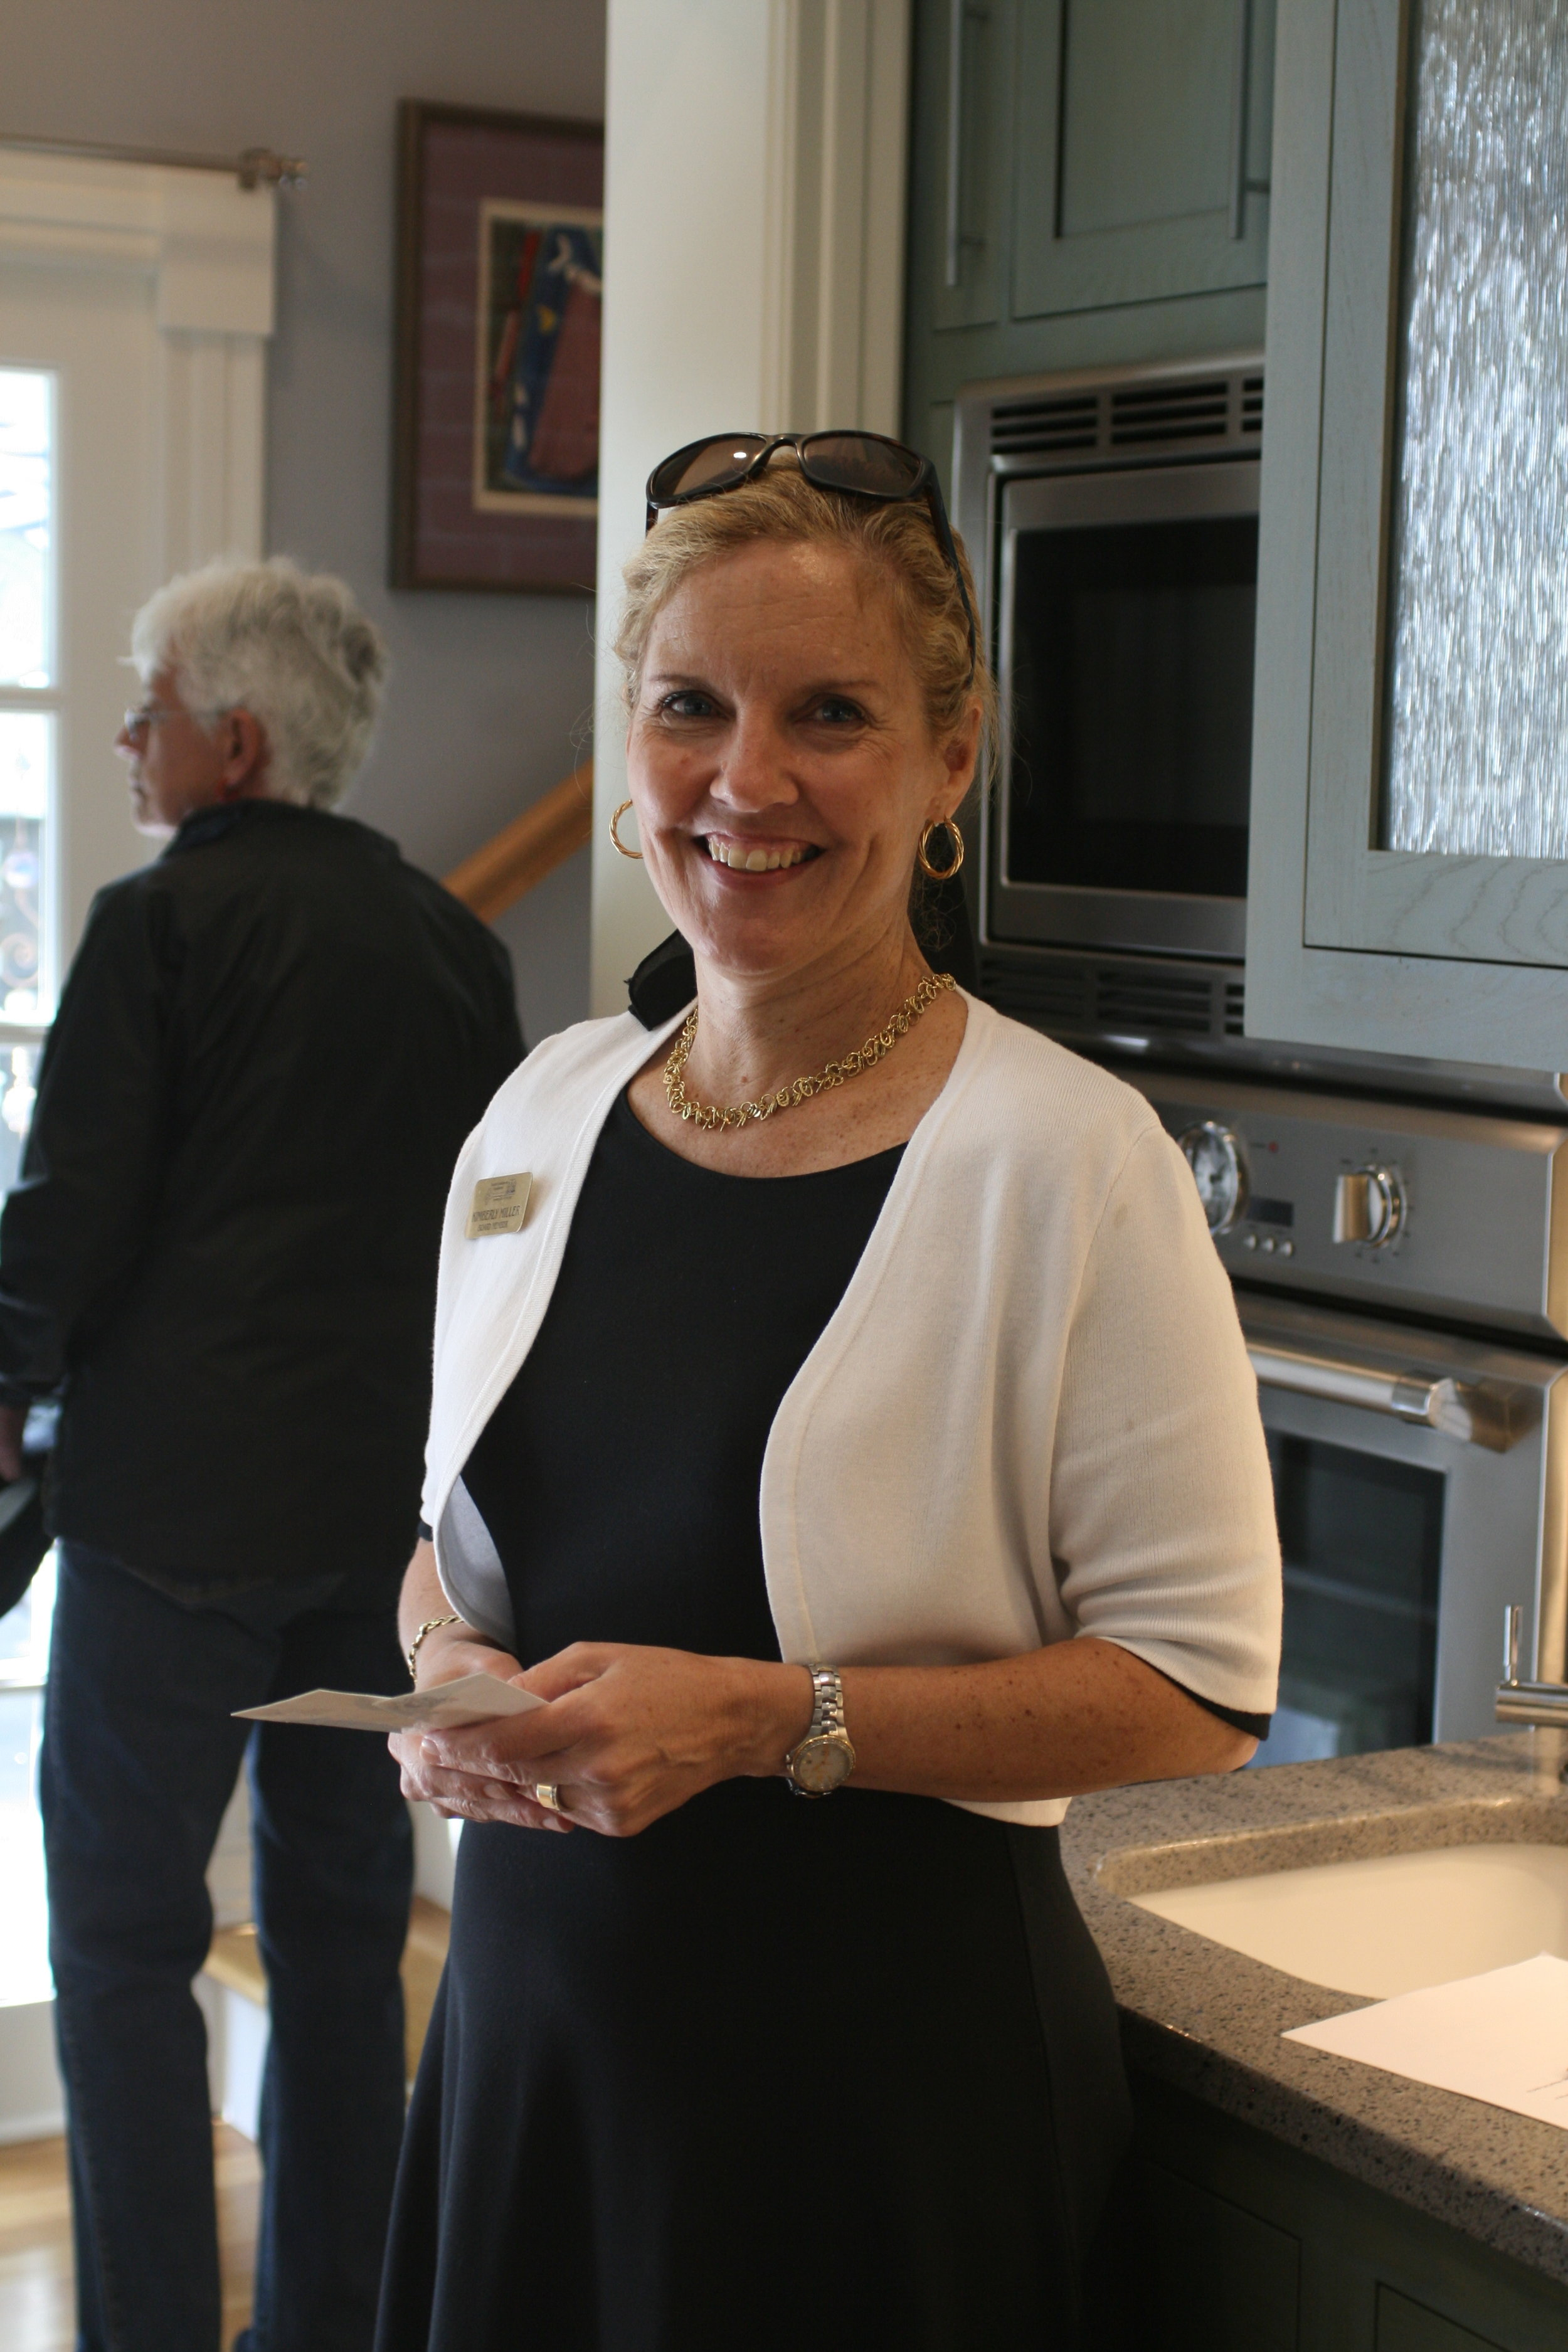 One of our dedicated volunteers at the Historic Homes Tour